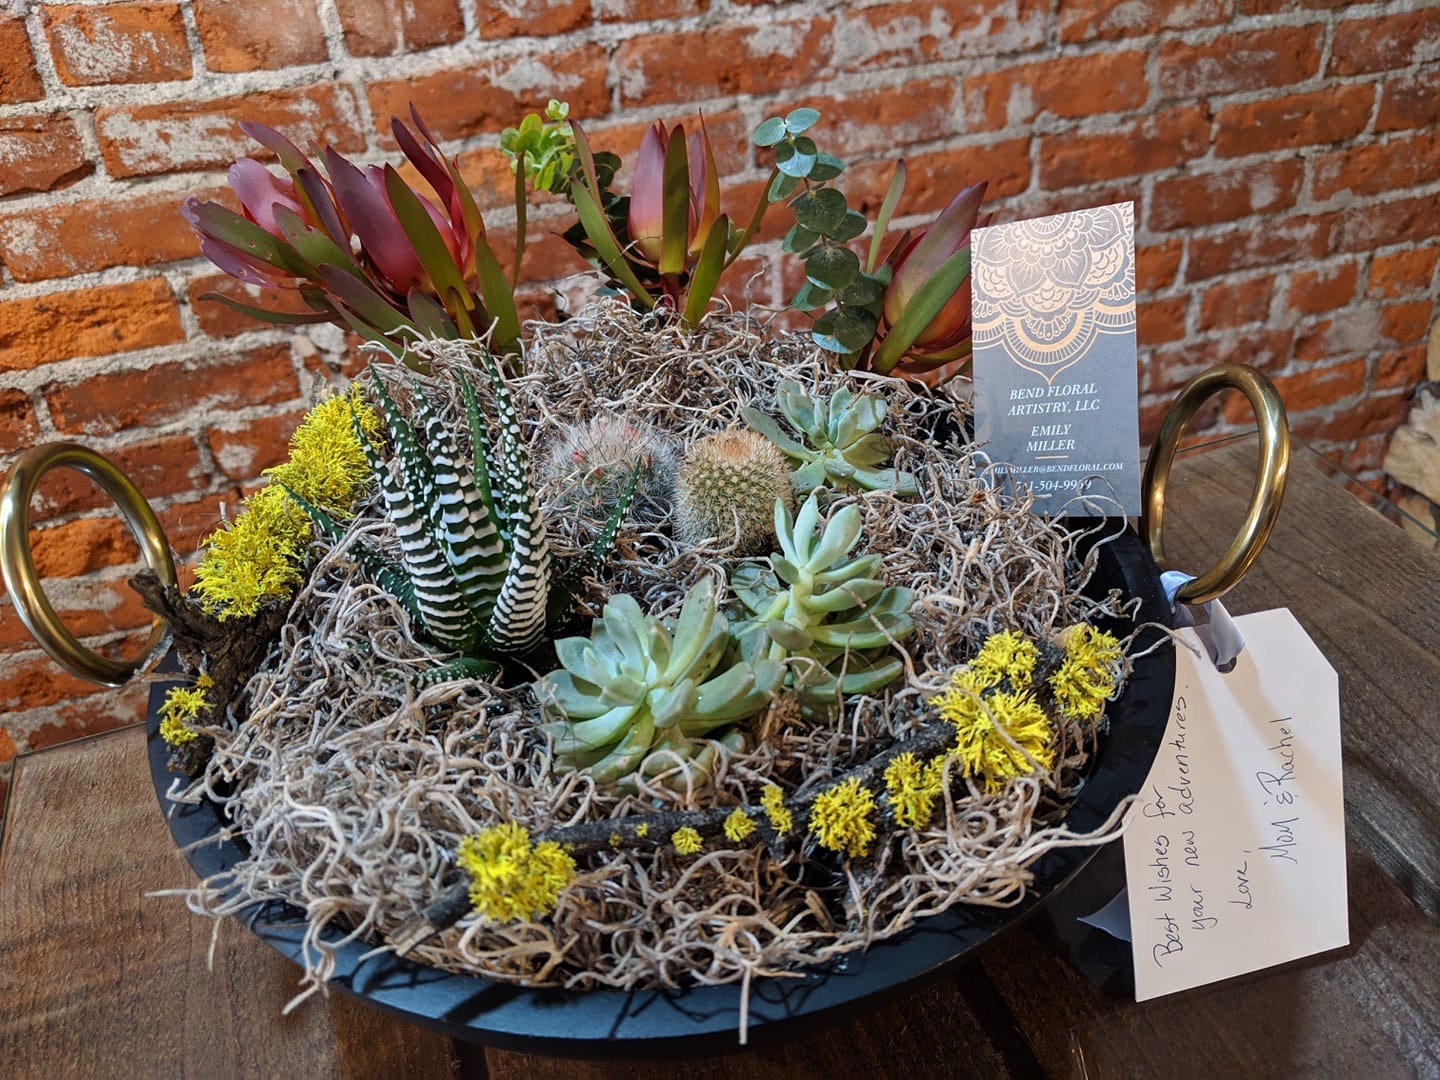 Bend Floral Artistry  -  Custom Floral Arrangements and Custom Succulent Trays for every occasion. Flower Deliveries in Bend, Oregon. Your Local Bend, Oregon Bespoke Florist.